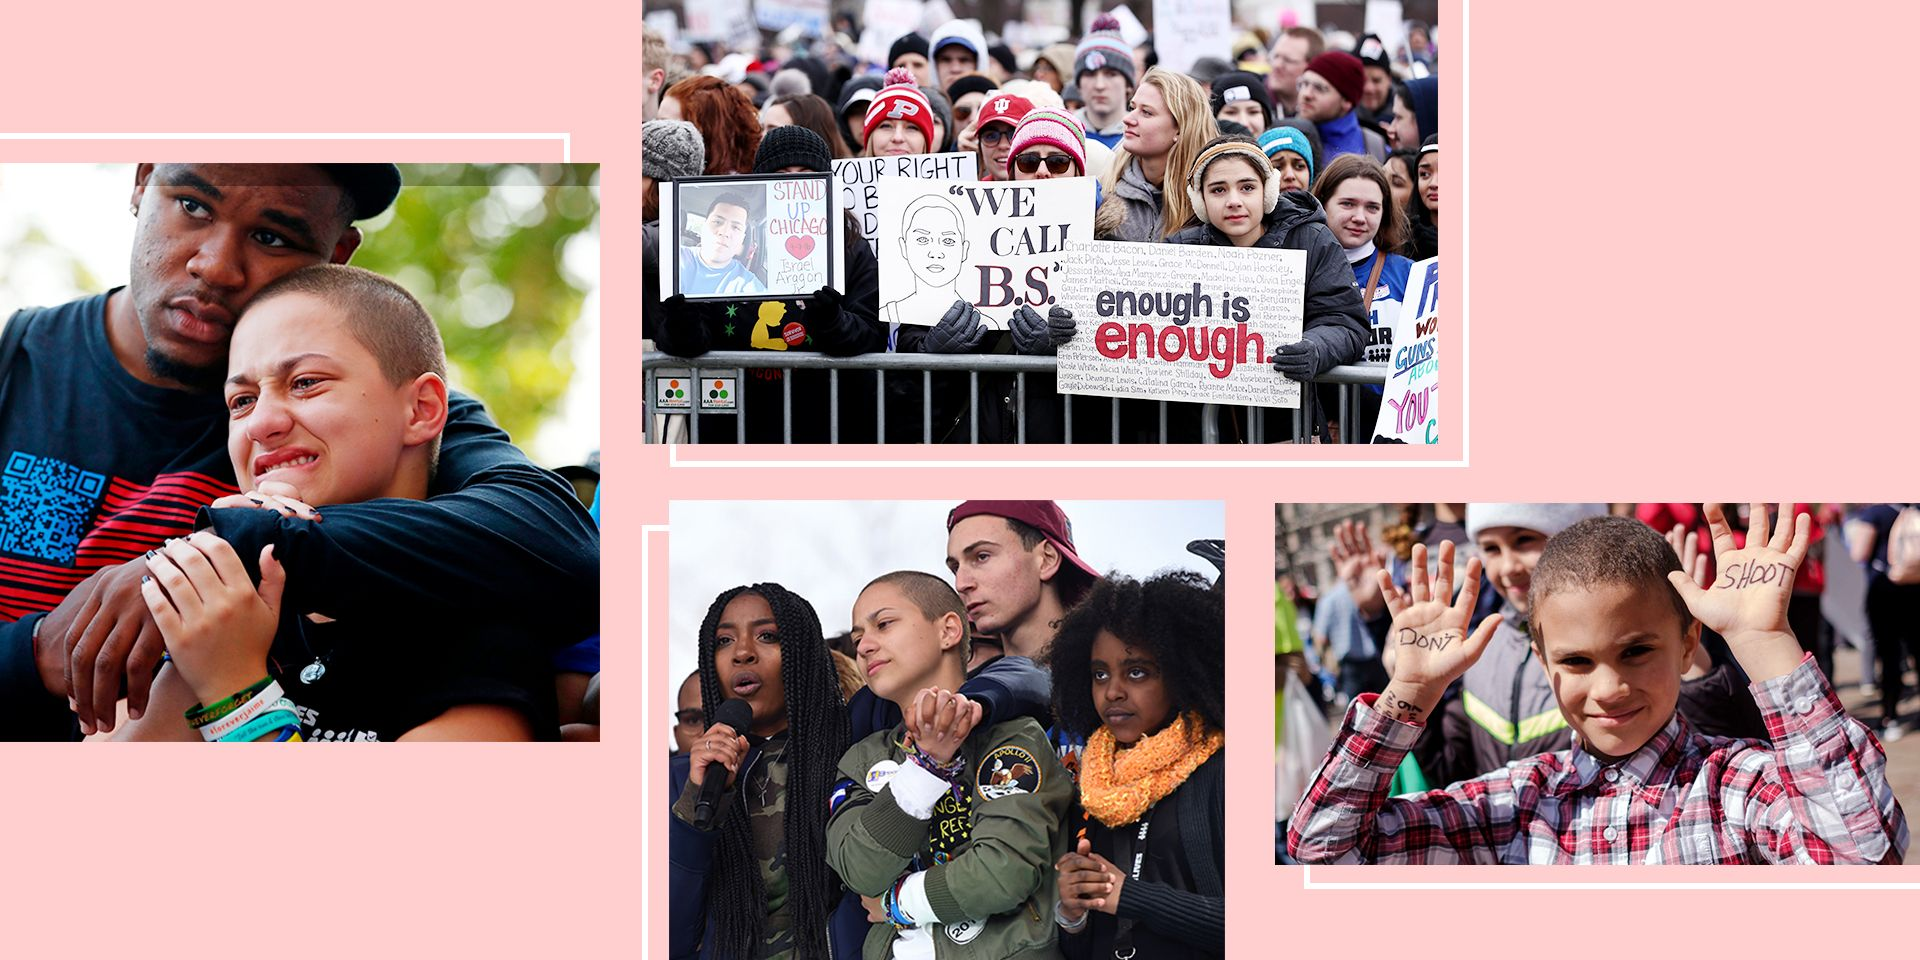 A Year After the Parkland Shooting, Has Anything Really Changed?